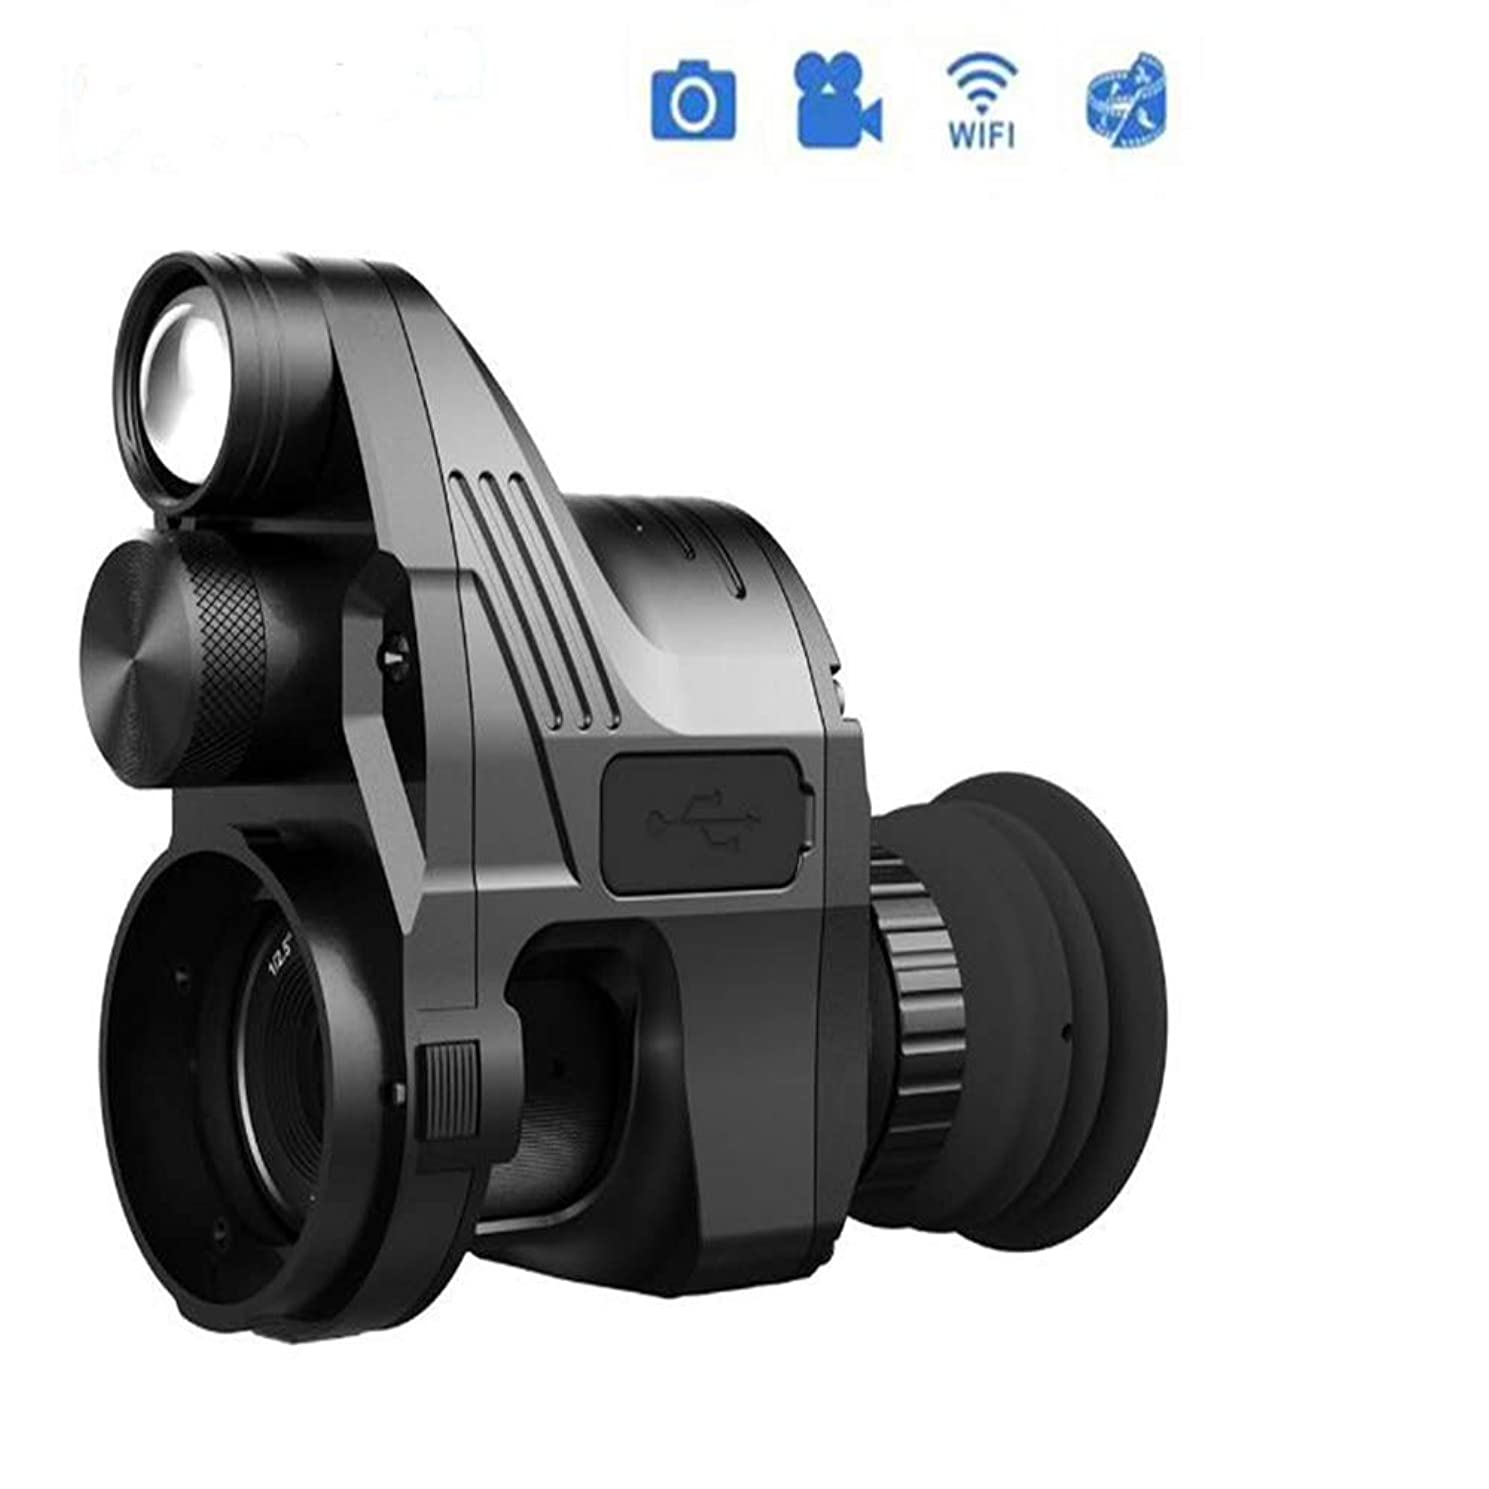 KASIQIWA NV700 Night Vision Device, Optics Digital Monocular Telescope Built-in IR-Illuminator with HD Len WiFi Connection use for Outdoor Video-Making Sightseeing